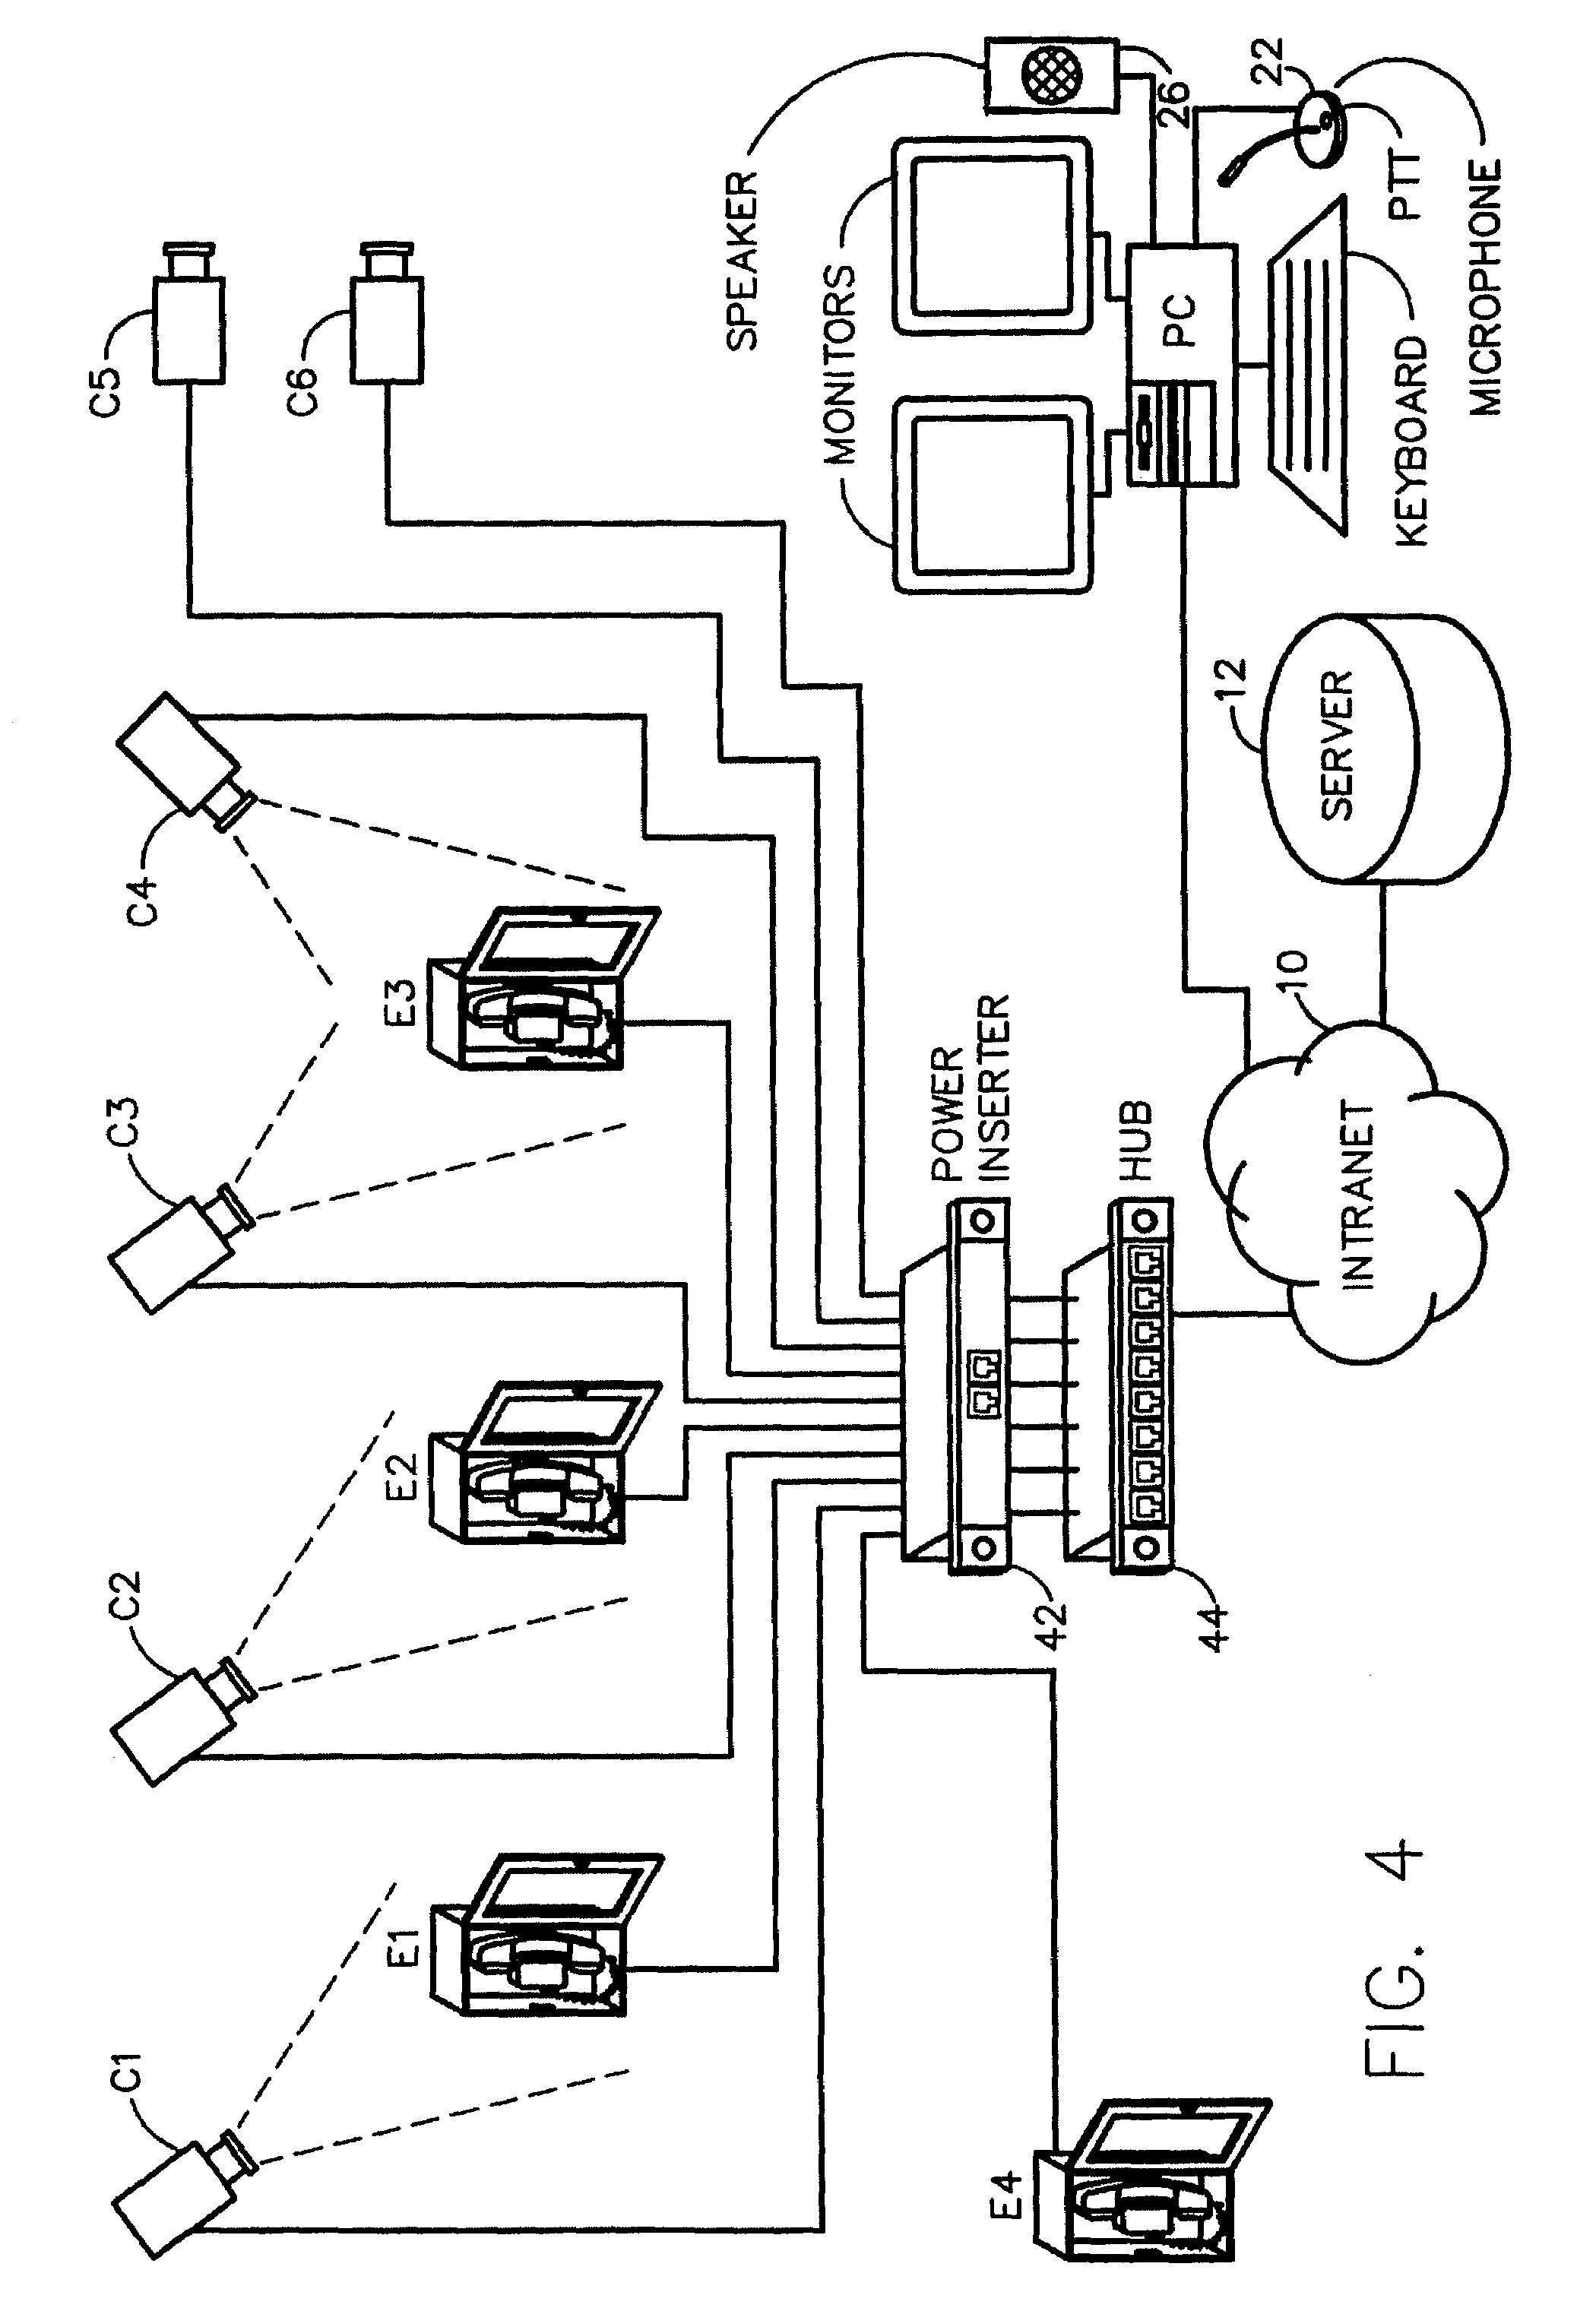 Patent Us 7428002 B2 Fig 42 Block Diagram Simplified Of The Tdm System Architecture